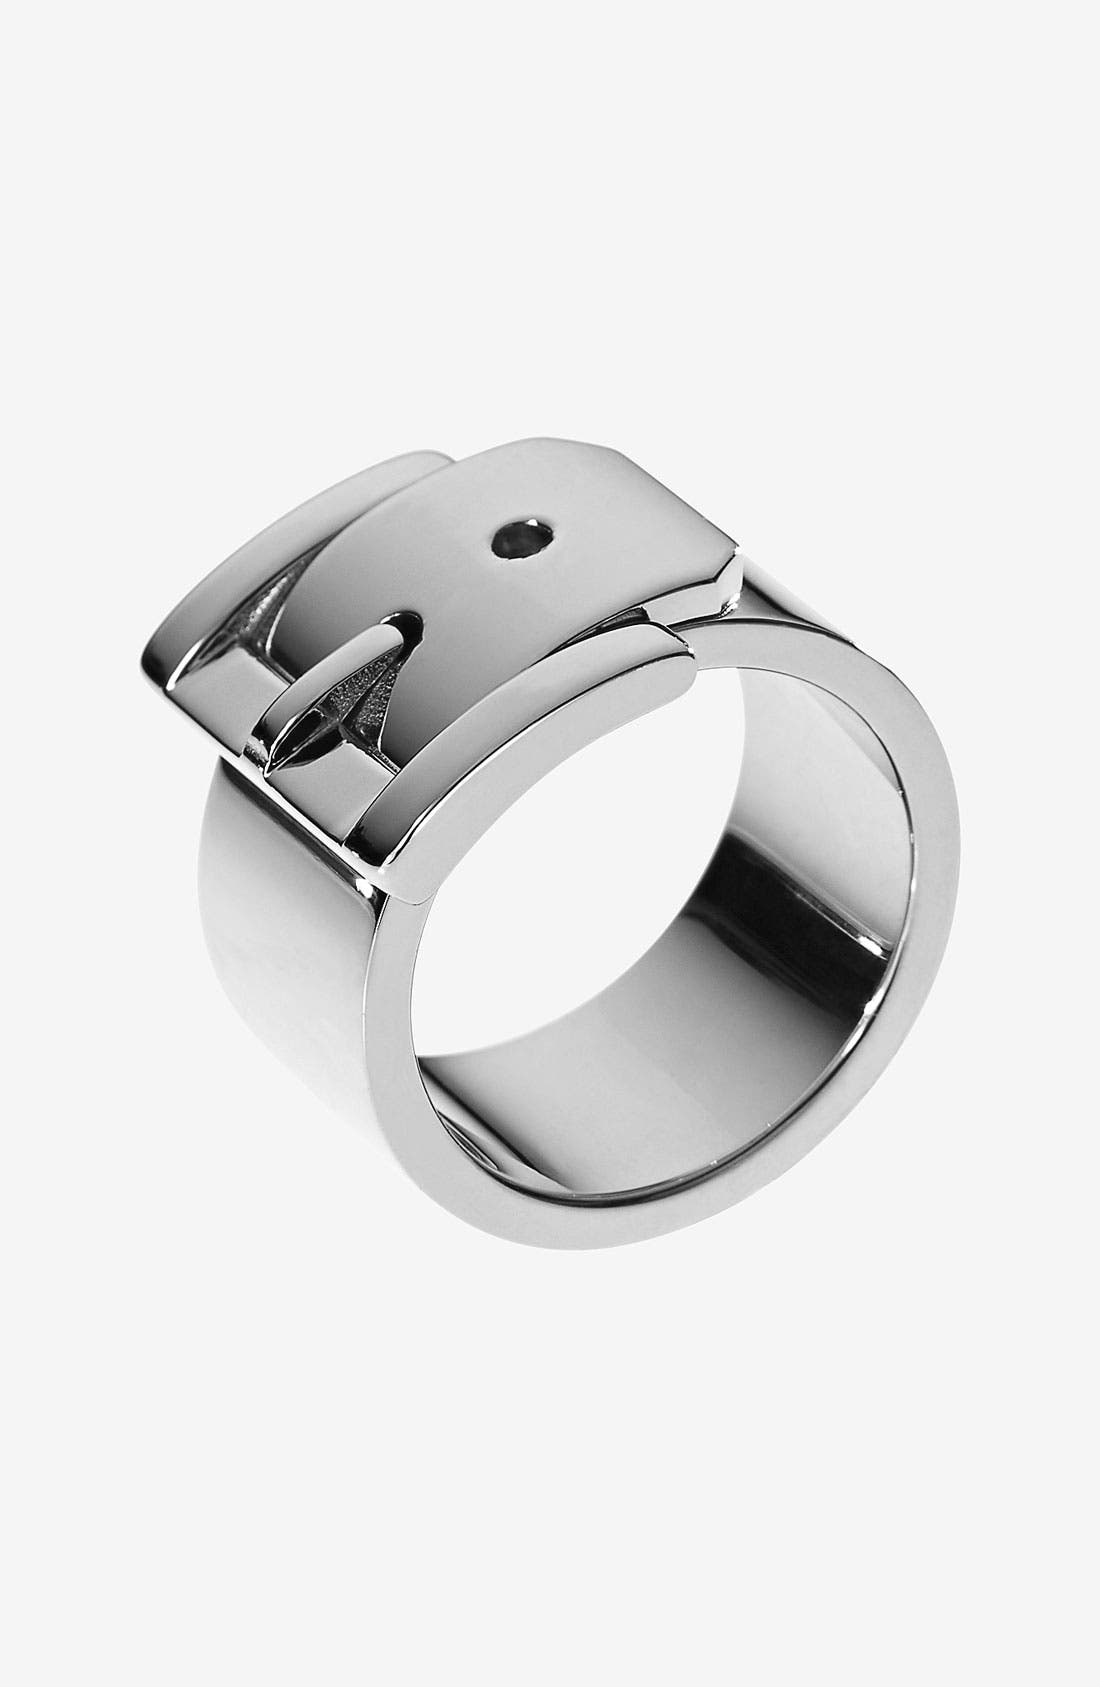 Main Image - Michael Kors Buckle Barrel Ring